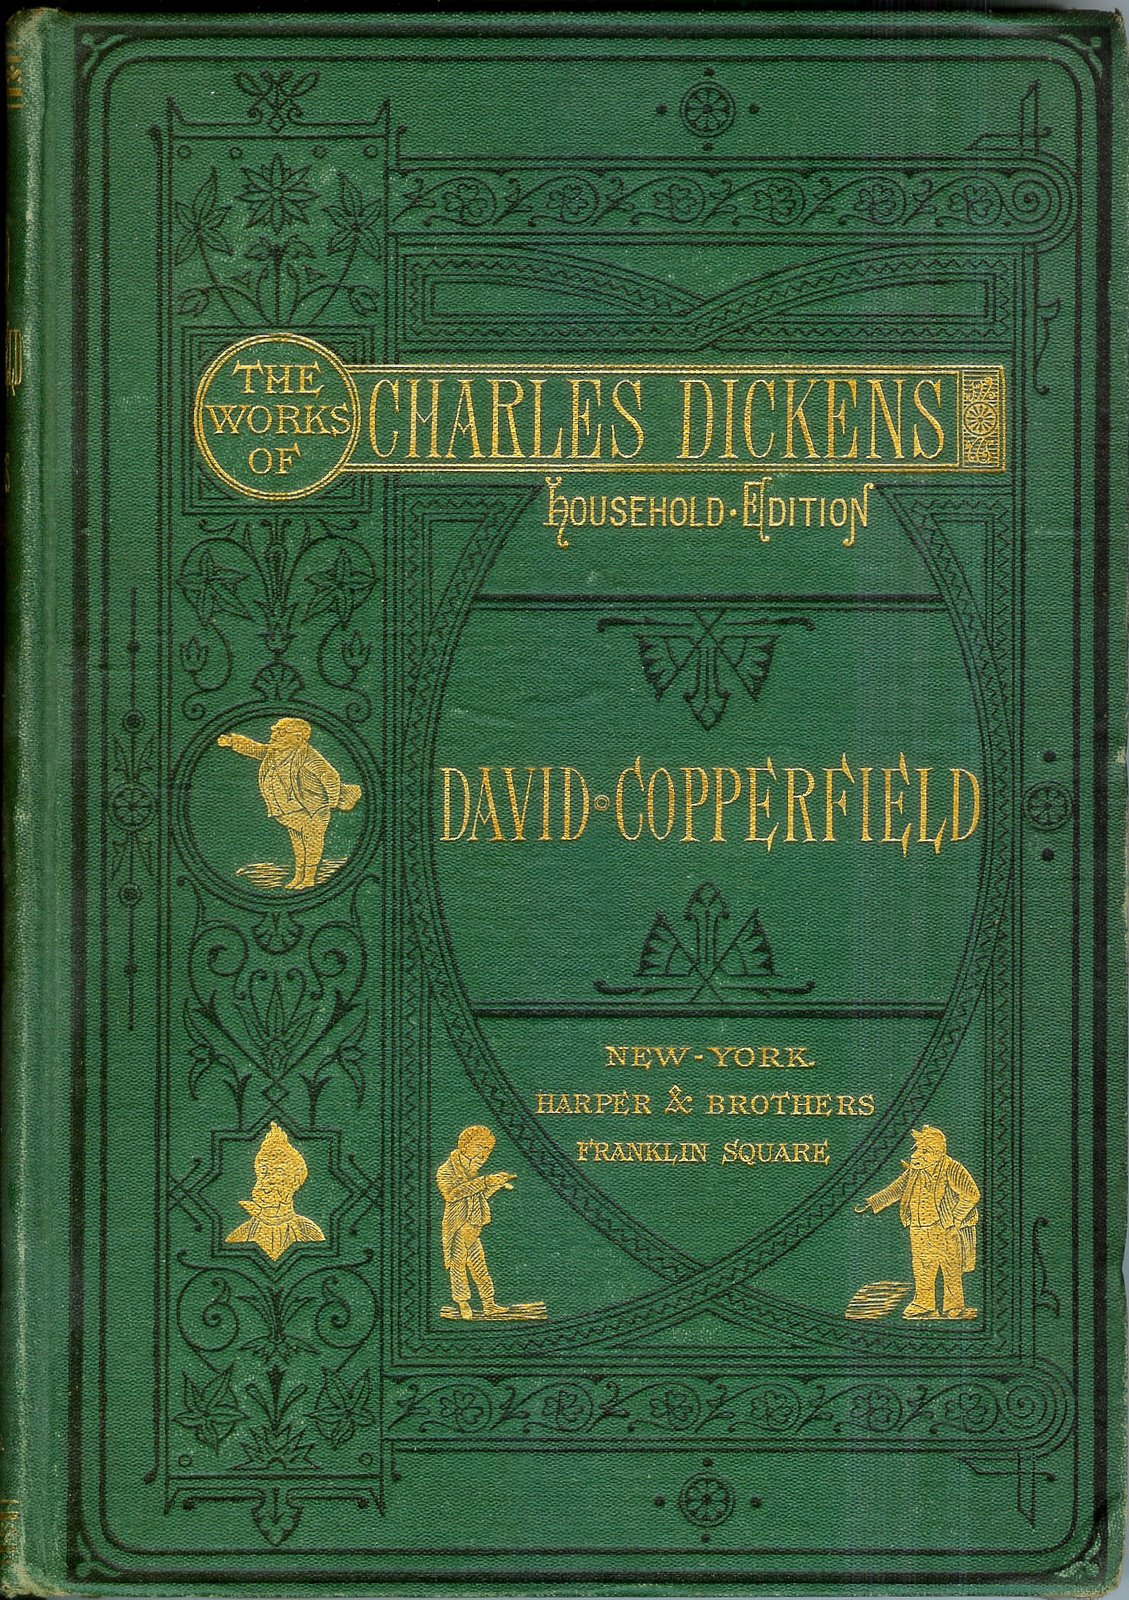 David Copperfield Libro Antelitteram Antiqua